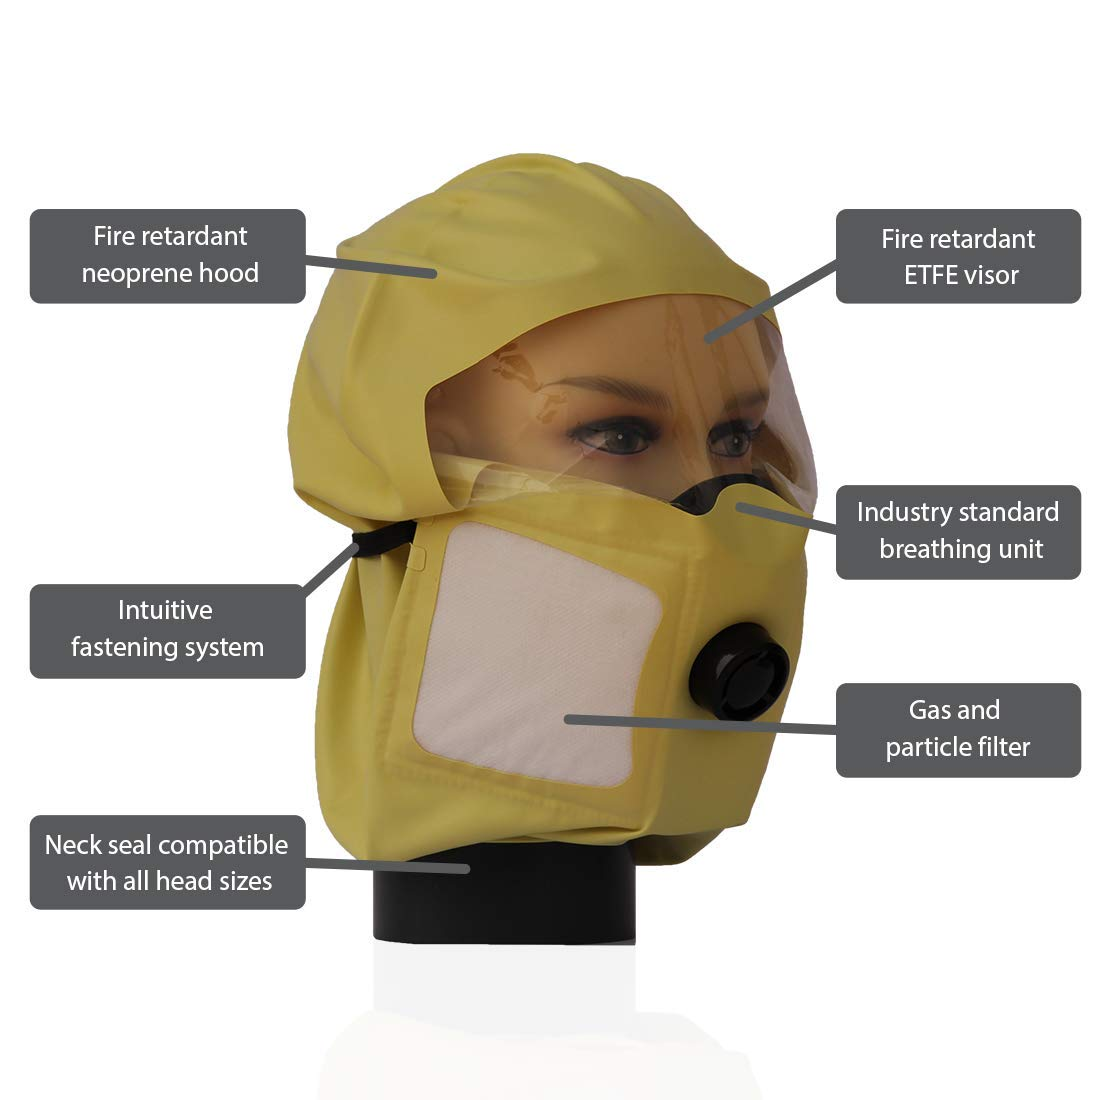 Duram 4NE1 Escape Mask Full Face Respirator Mask Gas Mask Emergency Mask Personal Protection Against Fire Gas Smoke by DURAM MASK (Image #2)